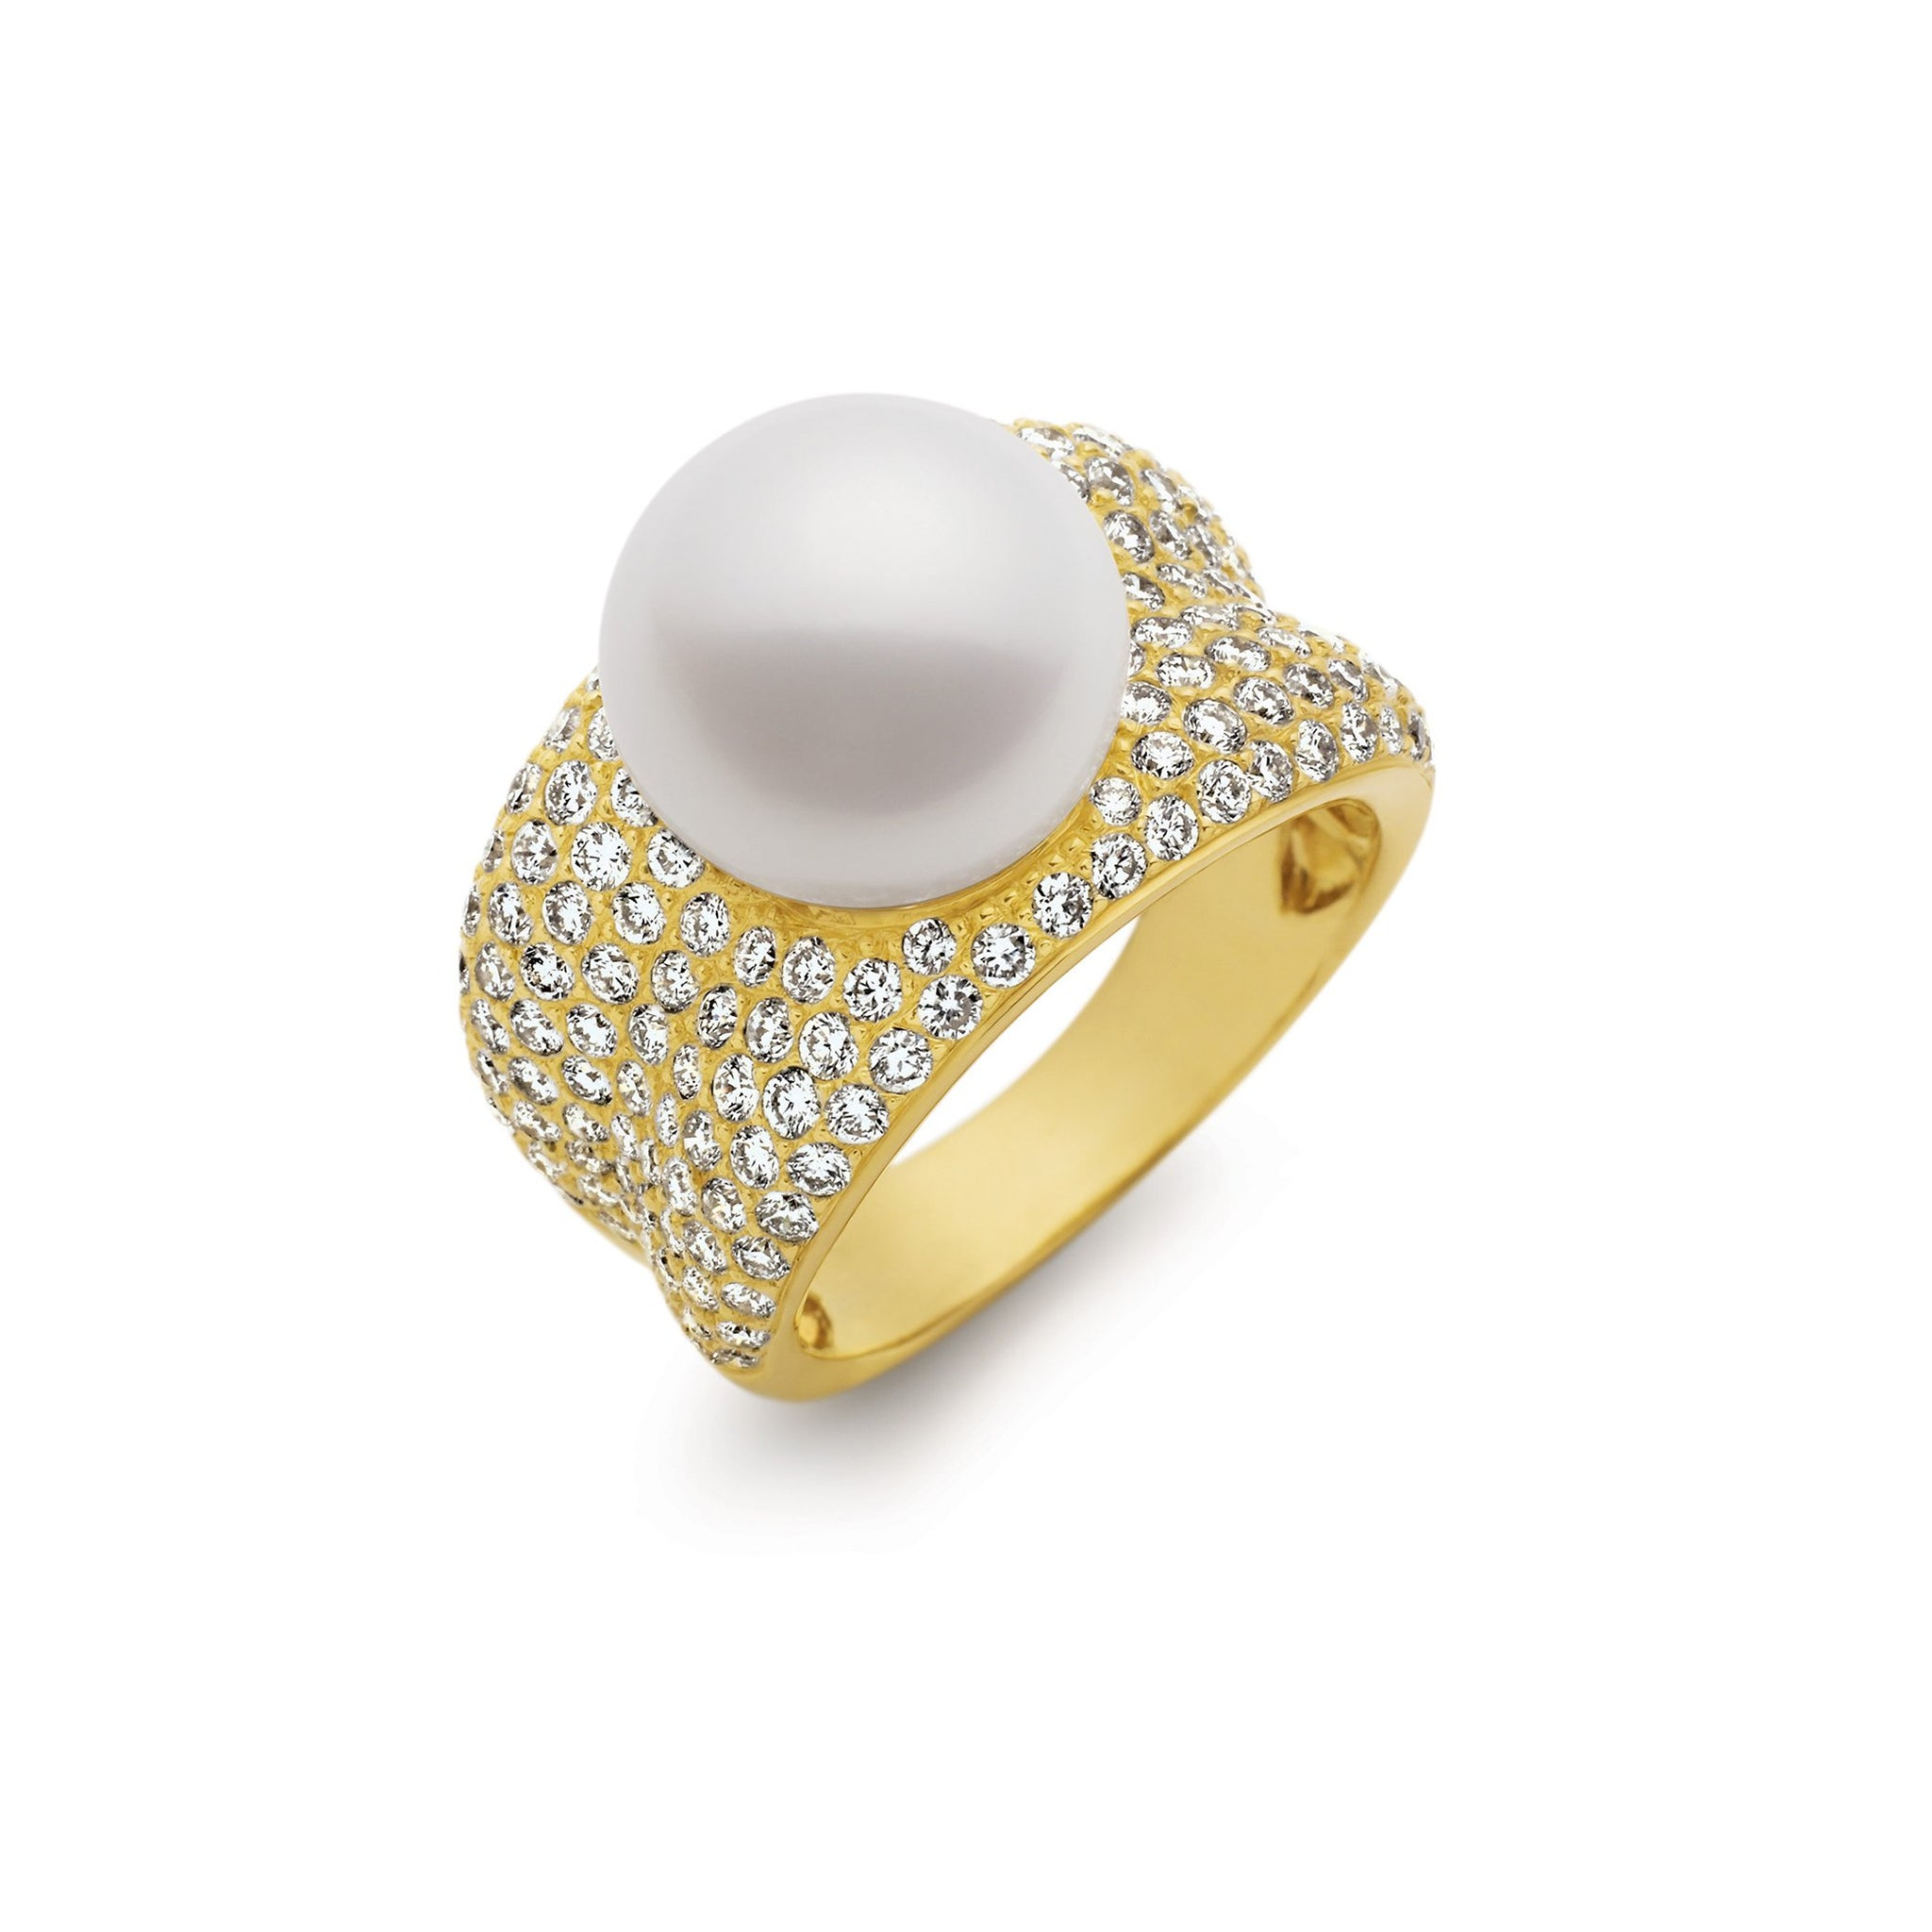 Kailis Jewellery - Adored Ring - Yellow Gold